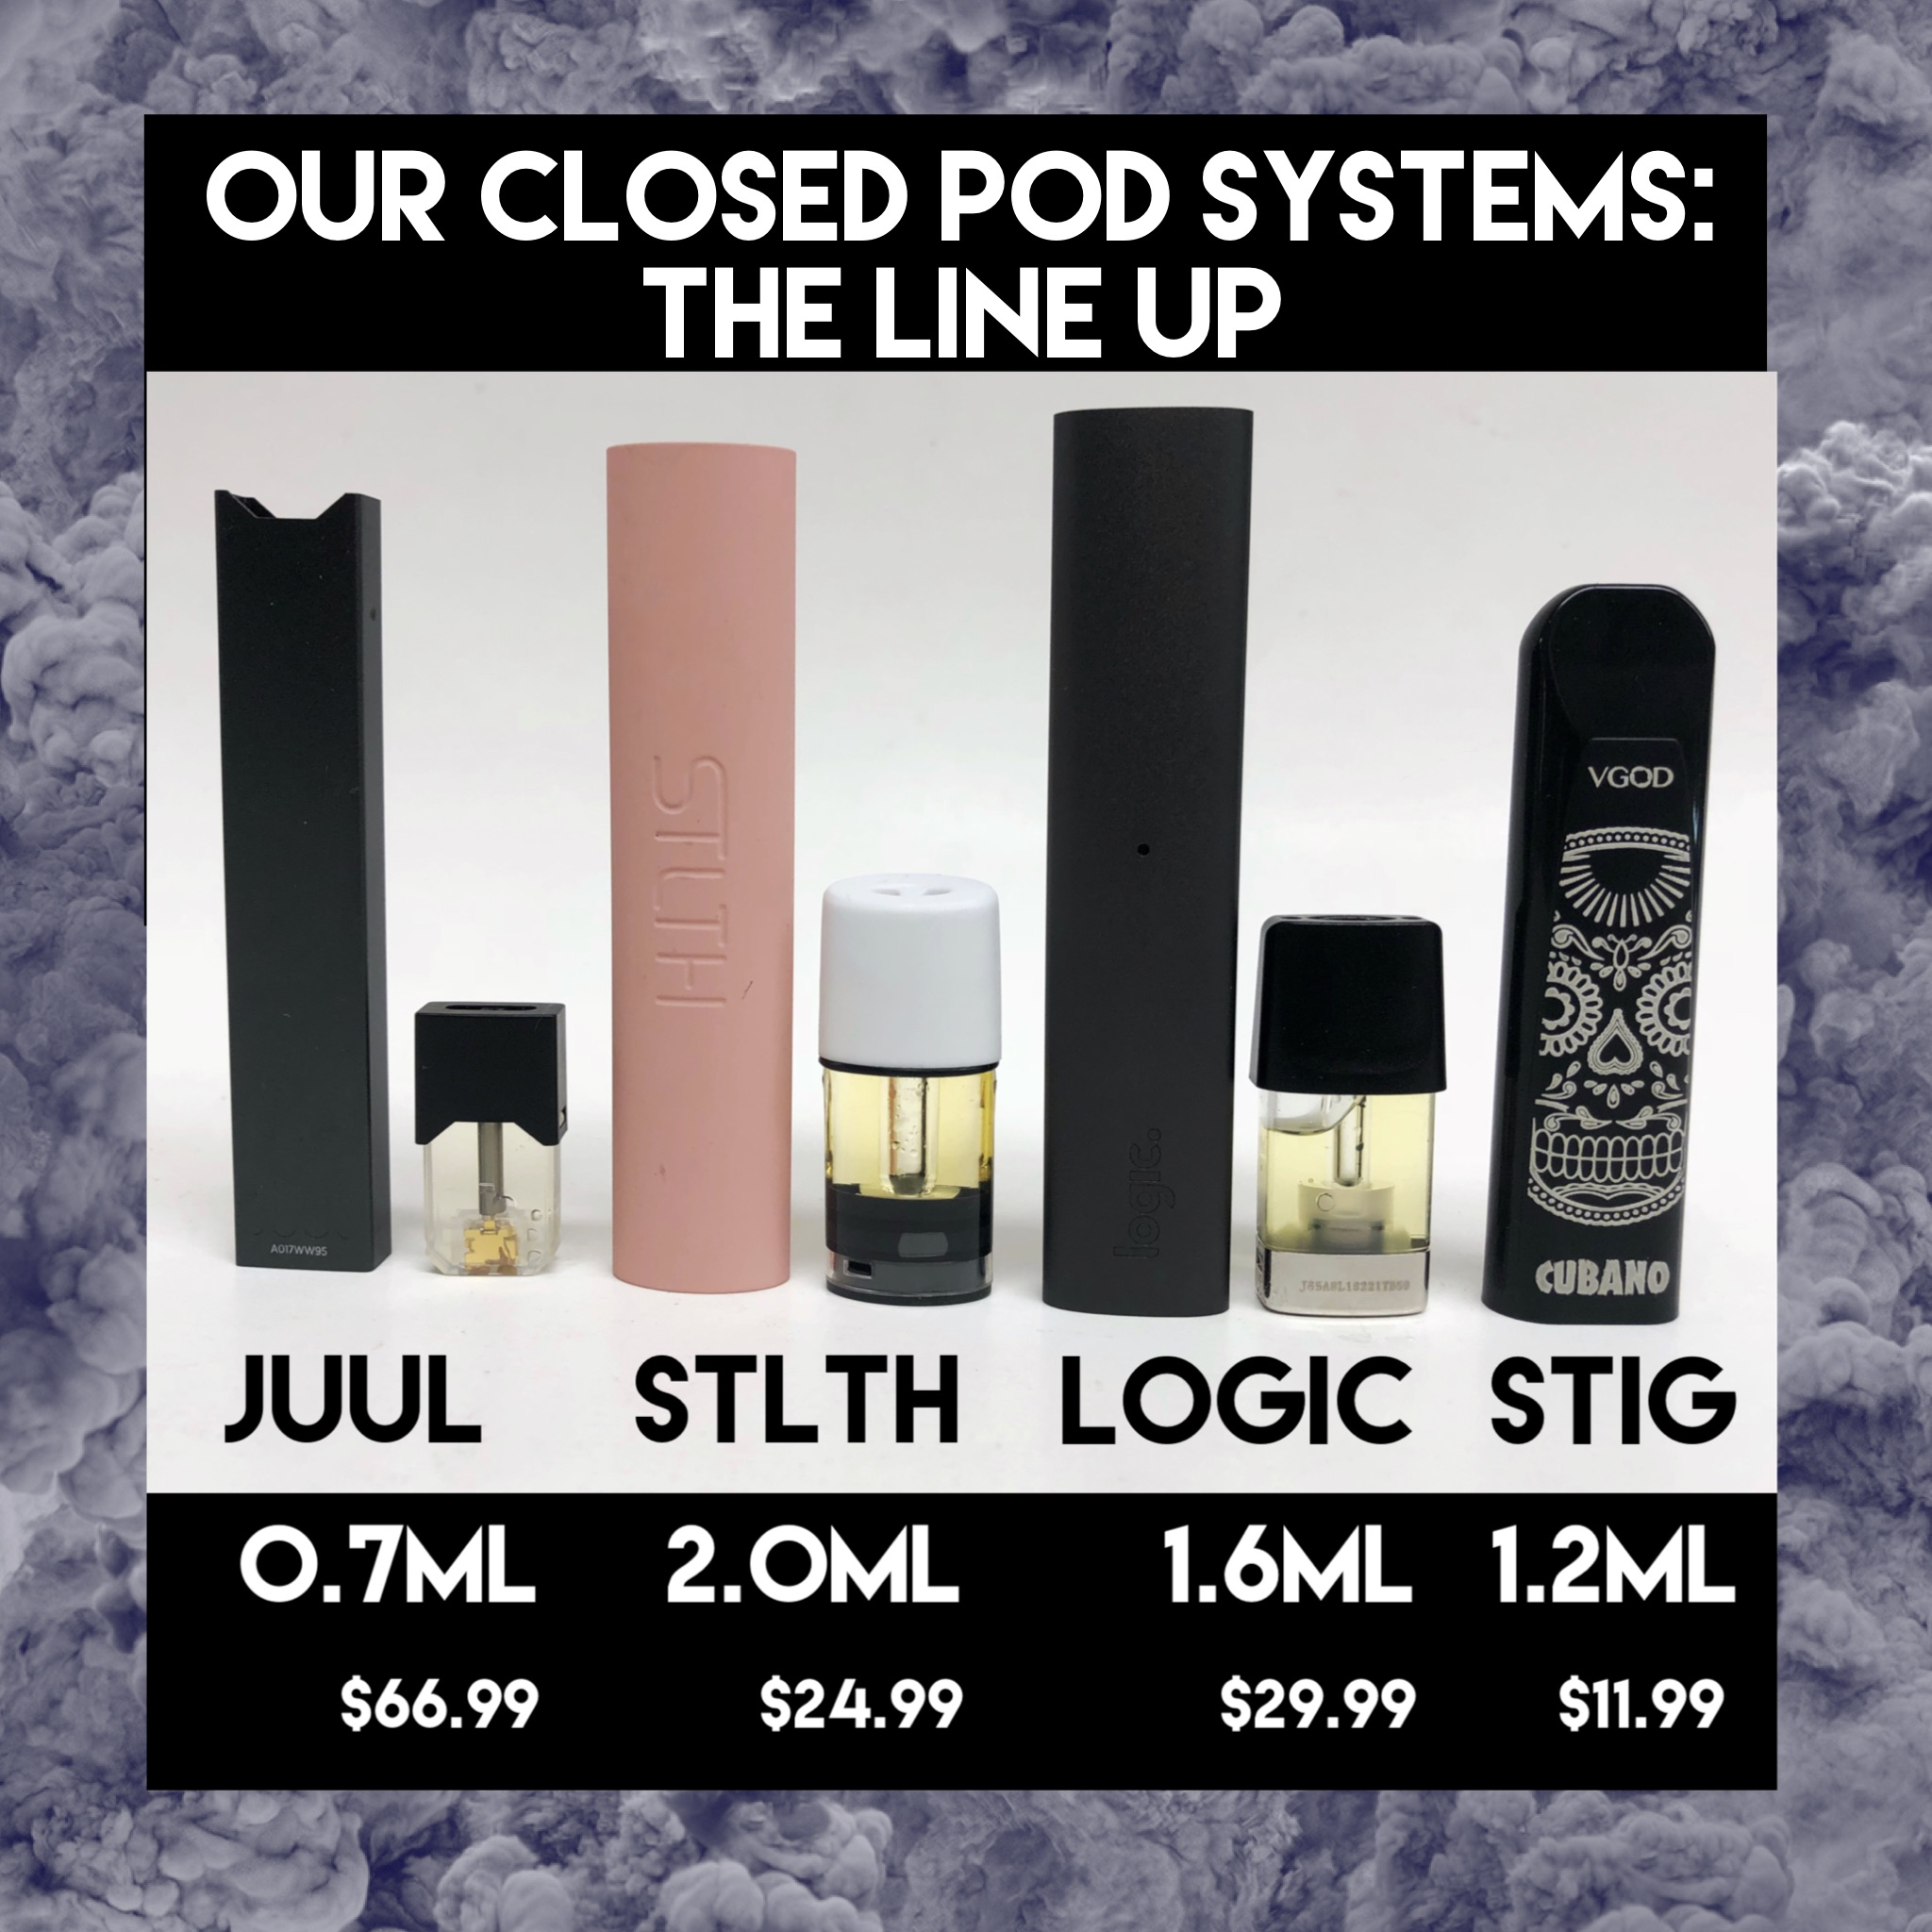 STLTH Vape is one of the newest challengers in the pod space